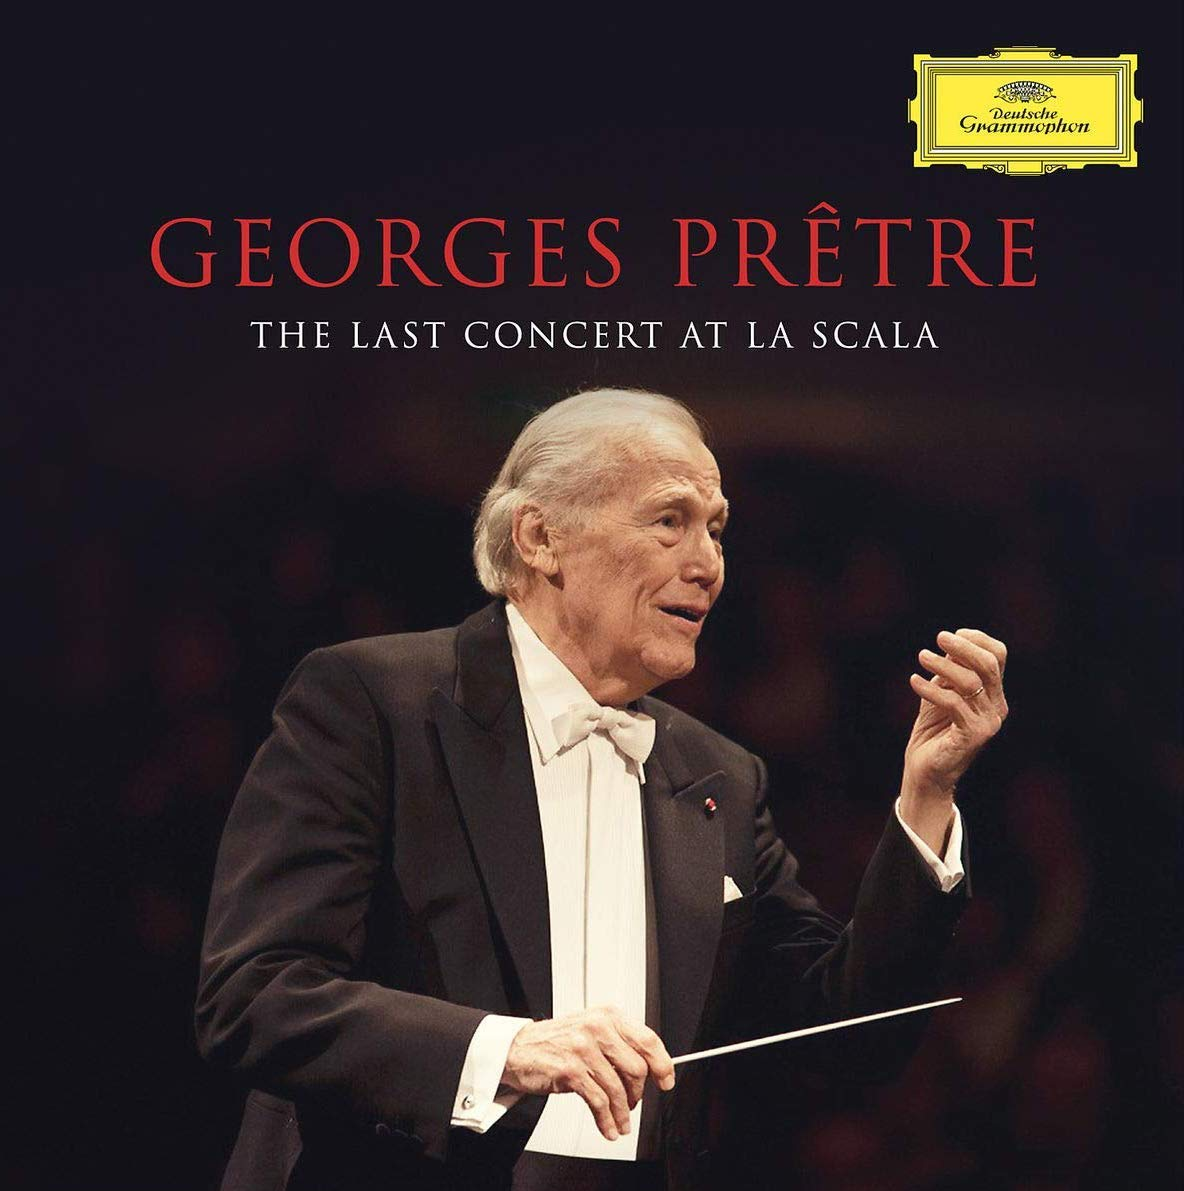 pretre georges the last concert at la scala dg deutsche grammophon cd classiquenews cd critique opera classiquenews